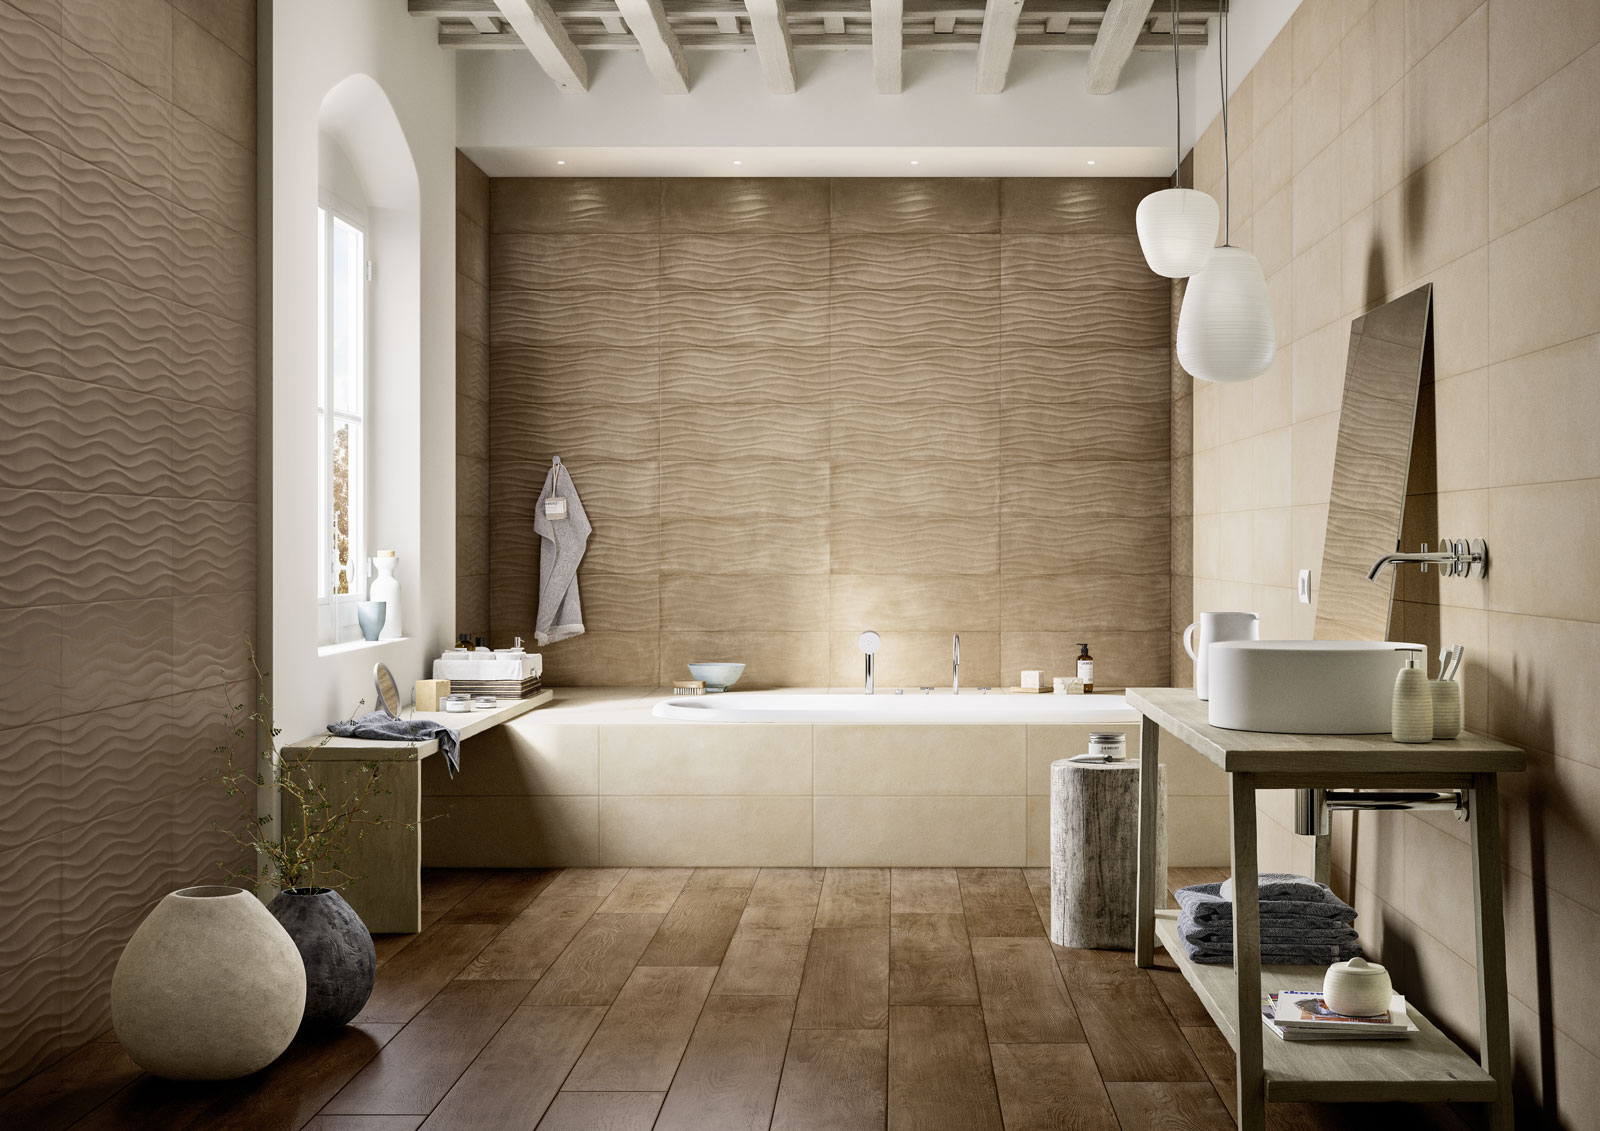 Clayline terracotta look ceramic wall covering marazzi clayline ceramic tiles marazzi7027 dailygadgetfo Image collections